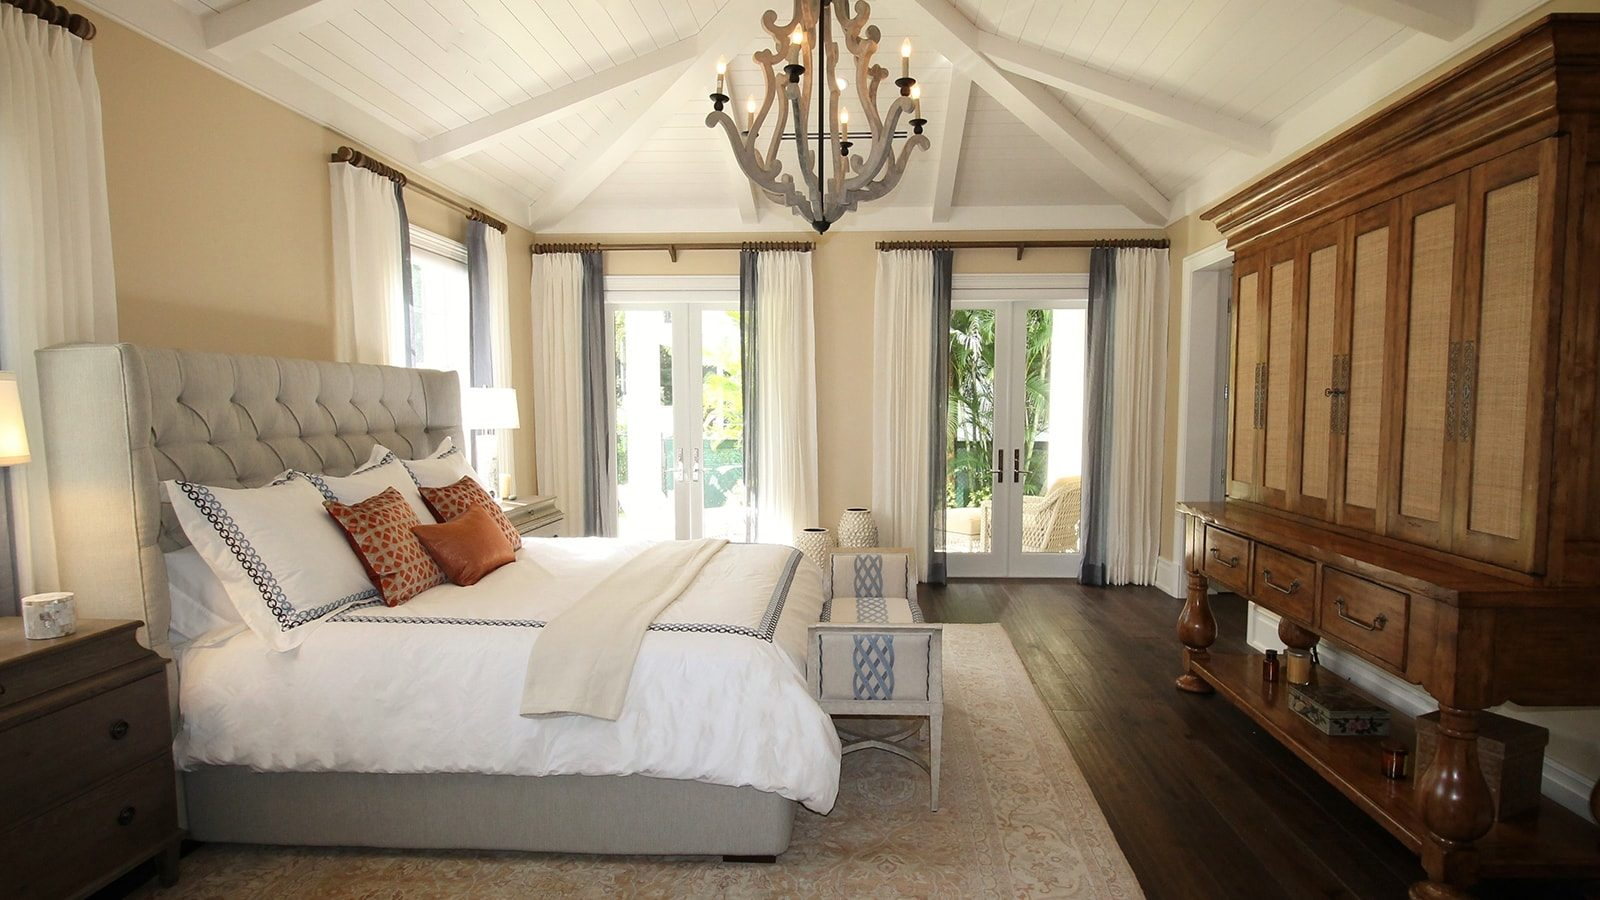 10 Vaulted Ceiling Design Ideas For Modern Bedrooms